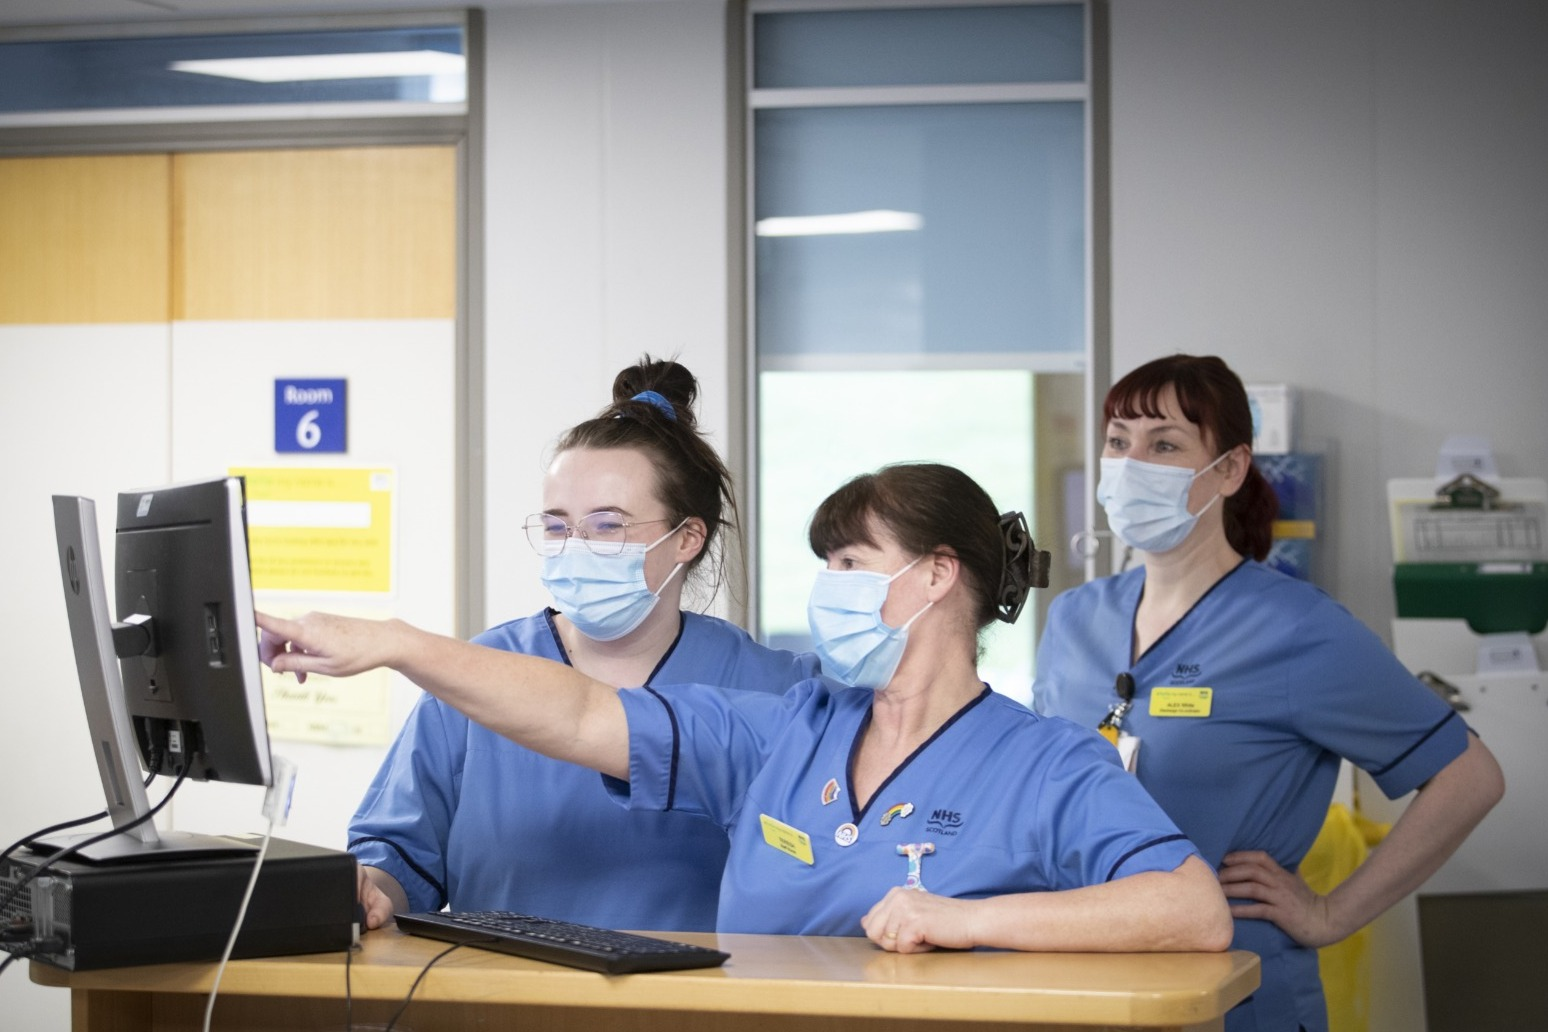 'Nightingale effect' sees surge in nurses joining NHS during pandemic